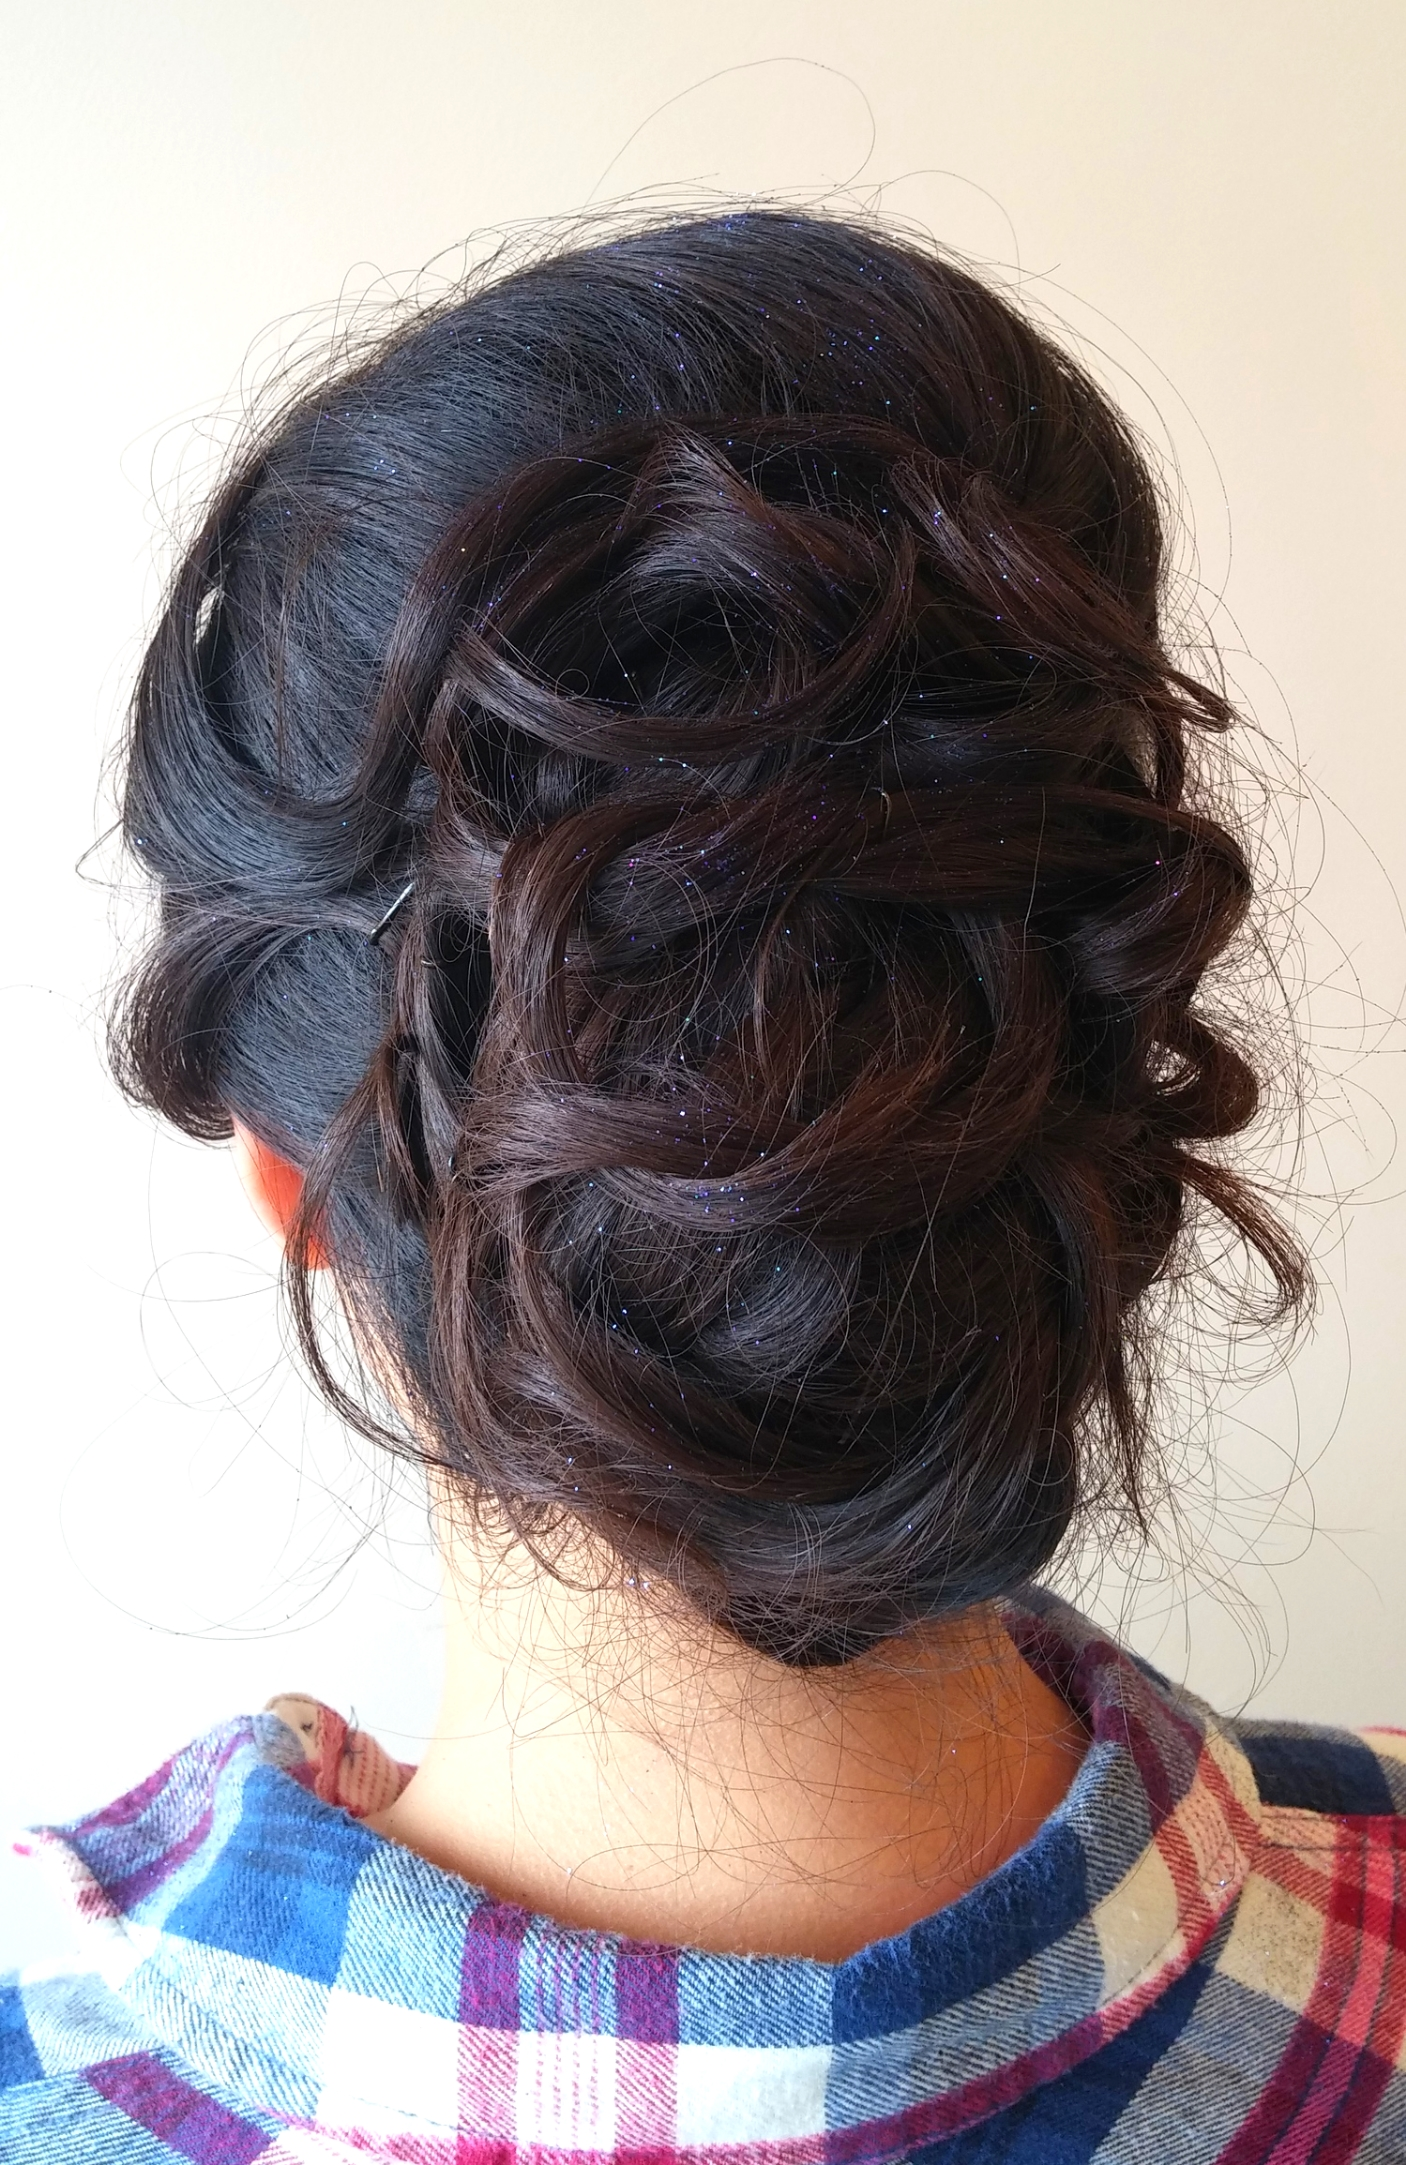 Mina's updo on her adorable client Joy!  Whether you may be planning on attending prom or cocktails with friends, everyone needs a fancy do once in a while. Come get styled by our team!